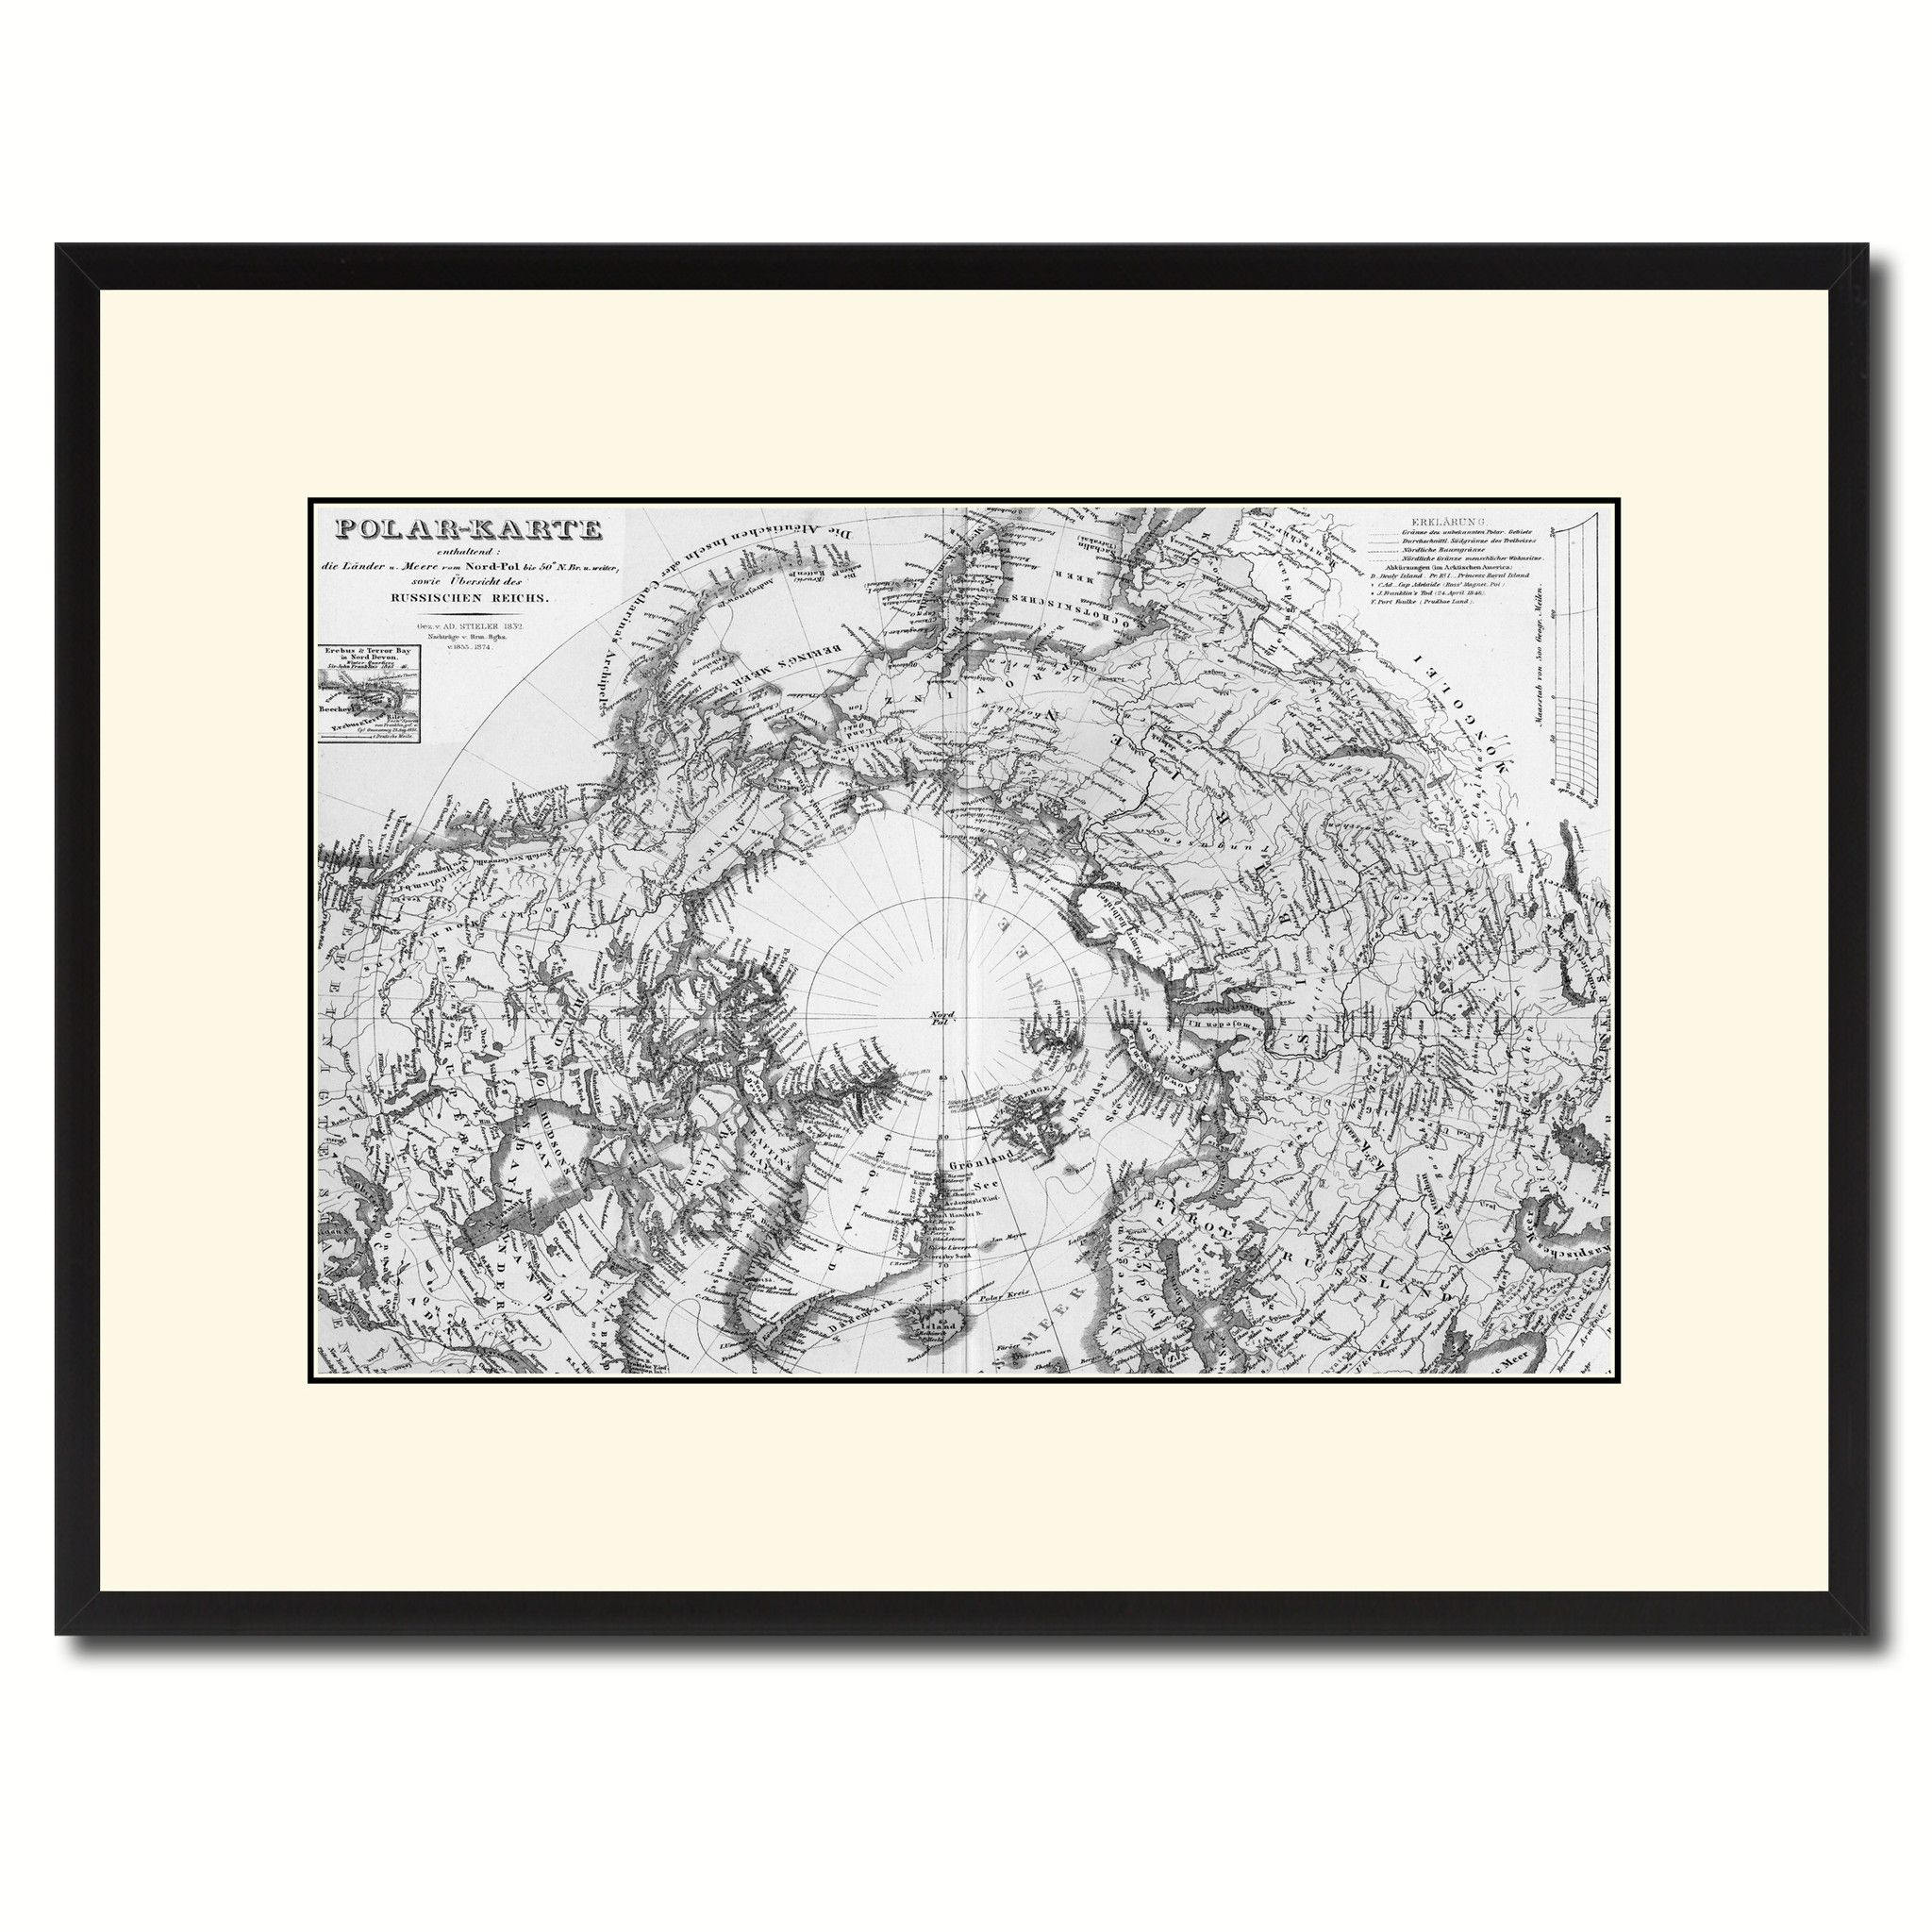 North Pole Stieler Vintage B&W Map Canvas Print, Picture Frame Home Decor Wall Art Gift Ideas